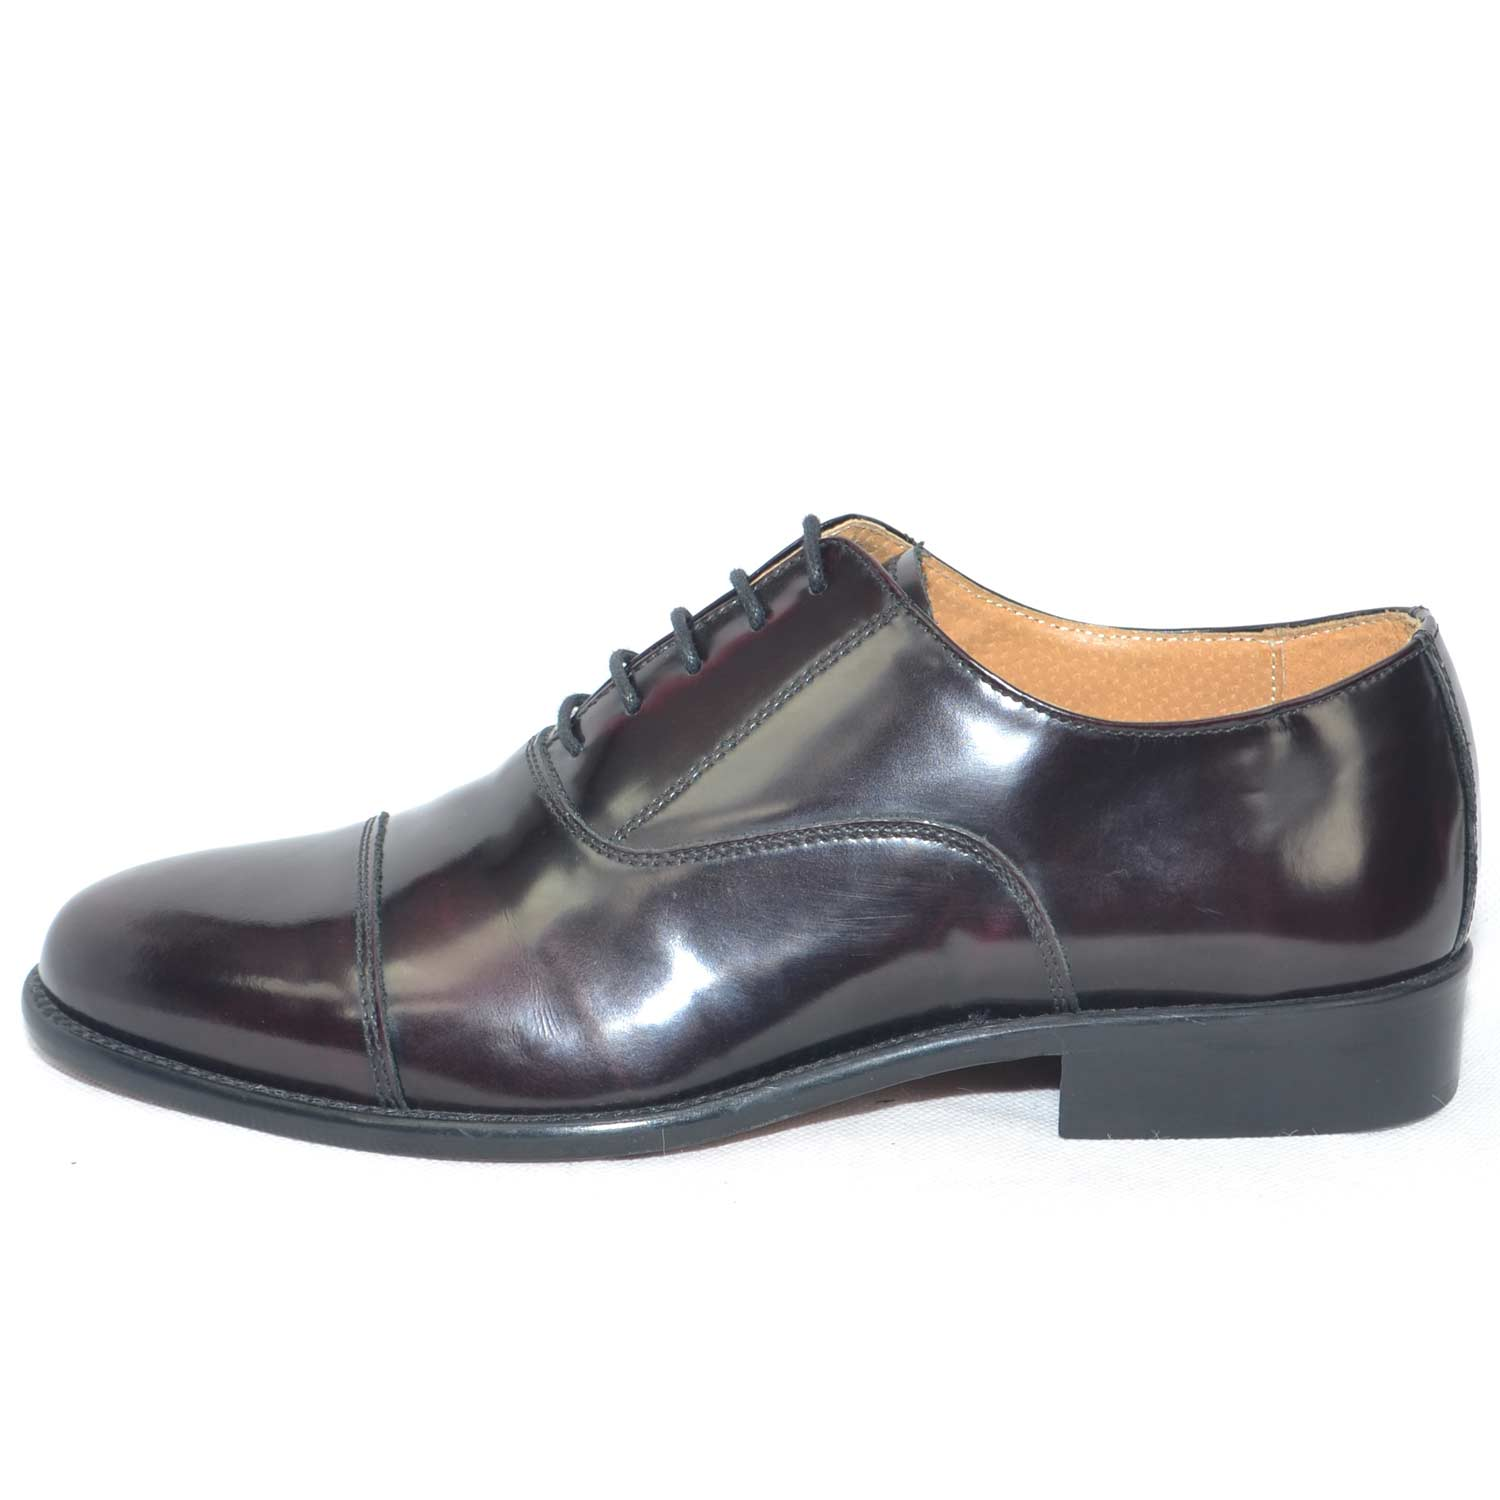 Scarpe uomo francesina inglese vera pelle lucida bordeaux made in italy fondo classico cerimonia genuine leather